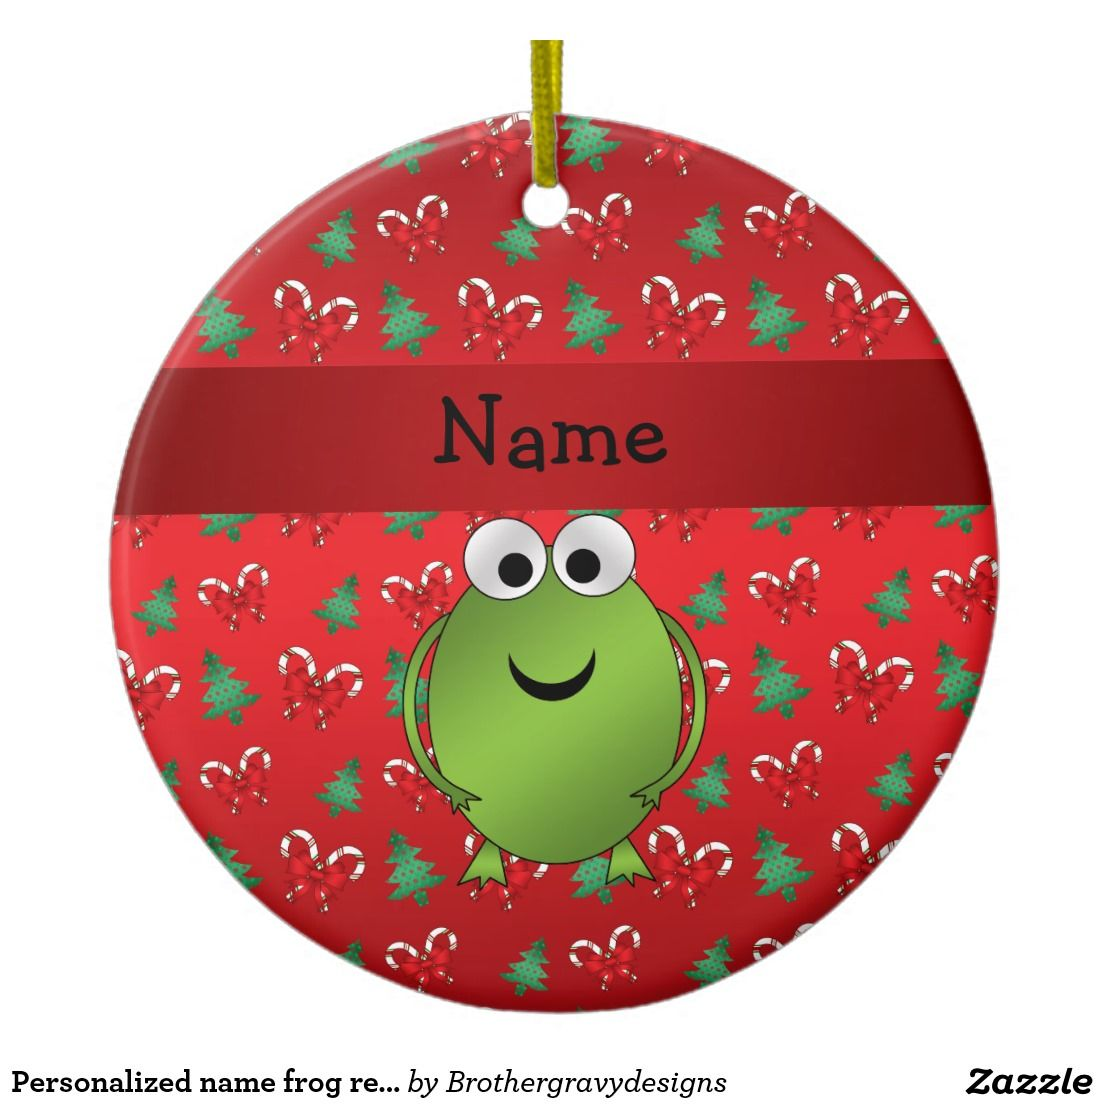 Personalized name ornaments - Personalized Name Frog Red Candy Canes Trees Ceramic Ornament